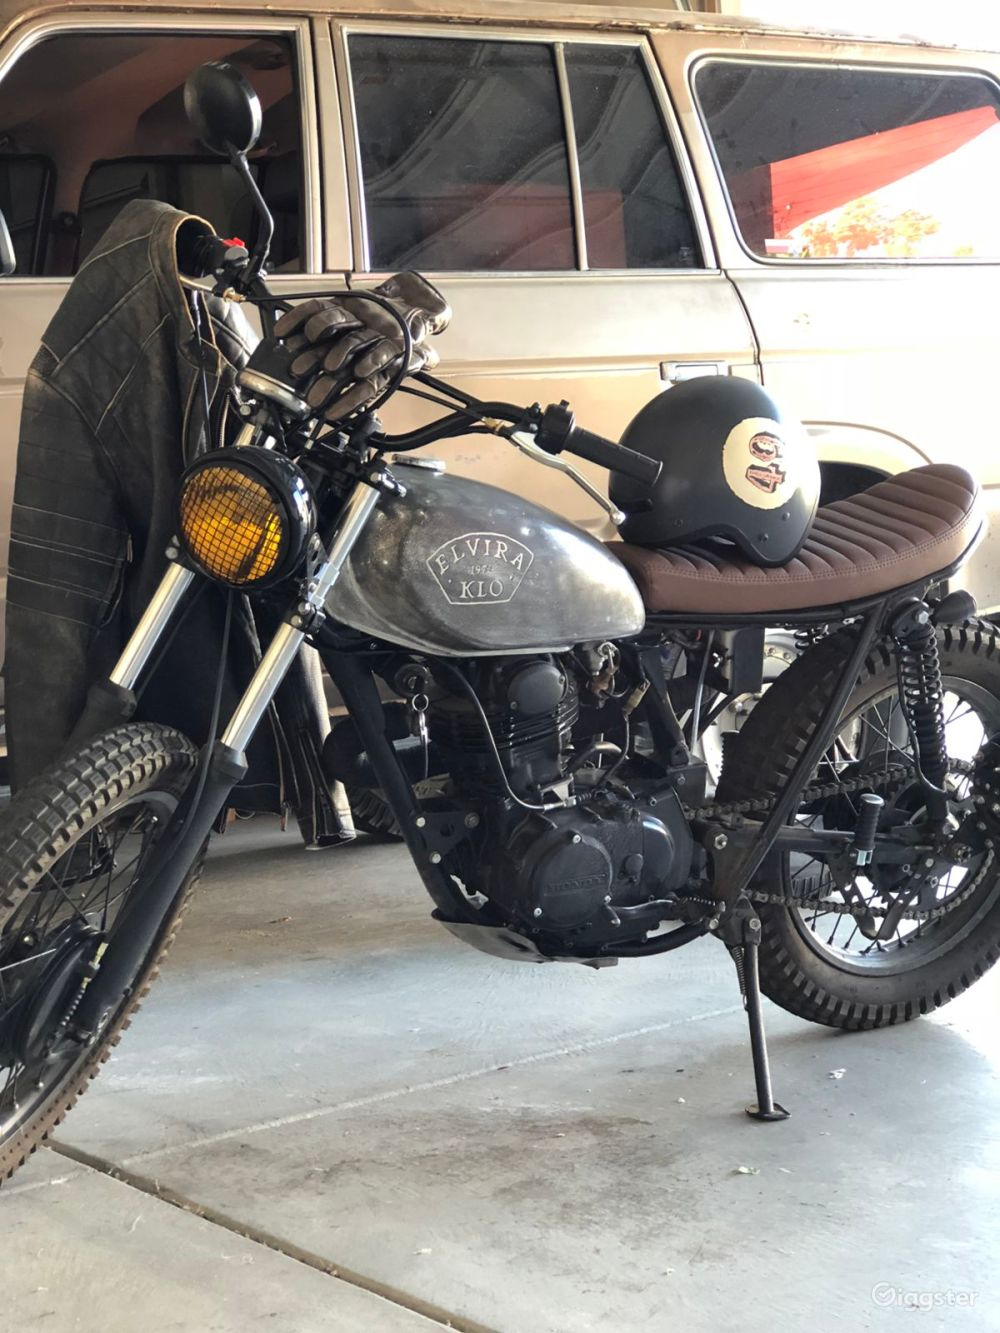 medium resolution of rent the motorcycle transportation 1972 honda scrambler awesome distressed look for filming